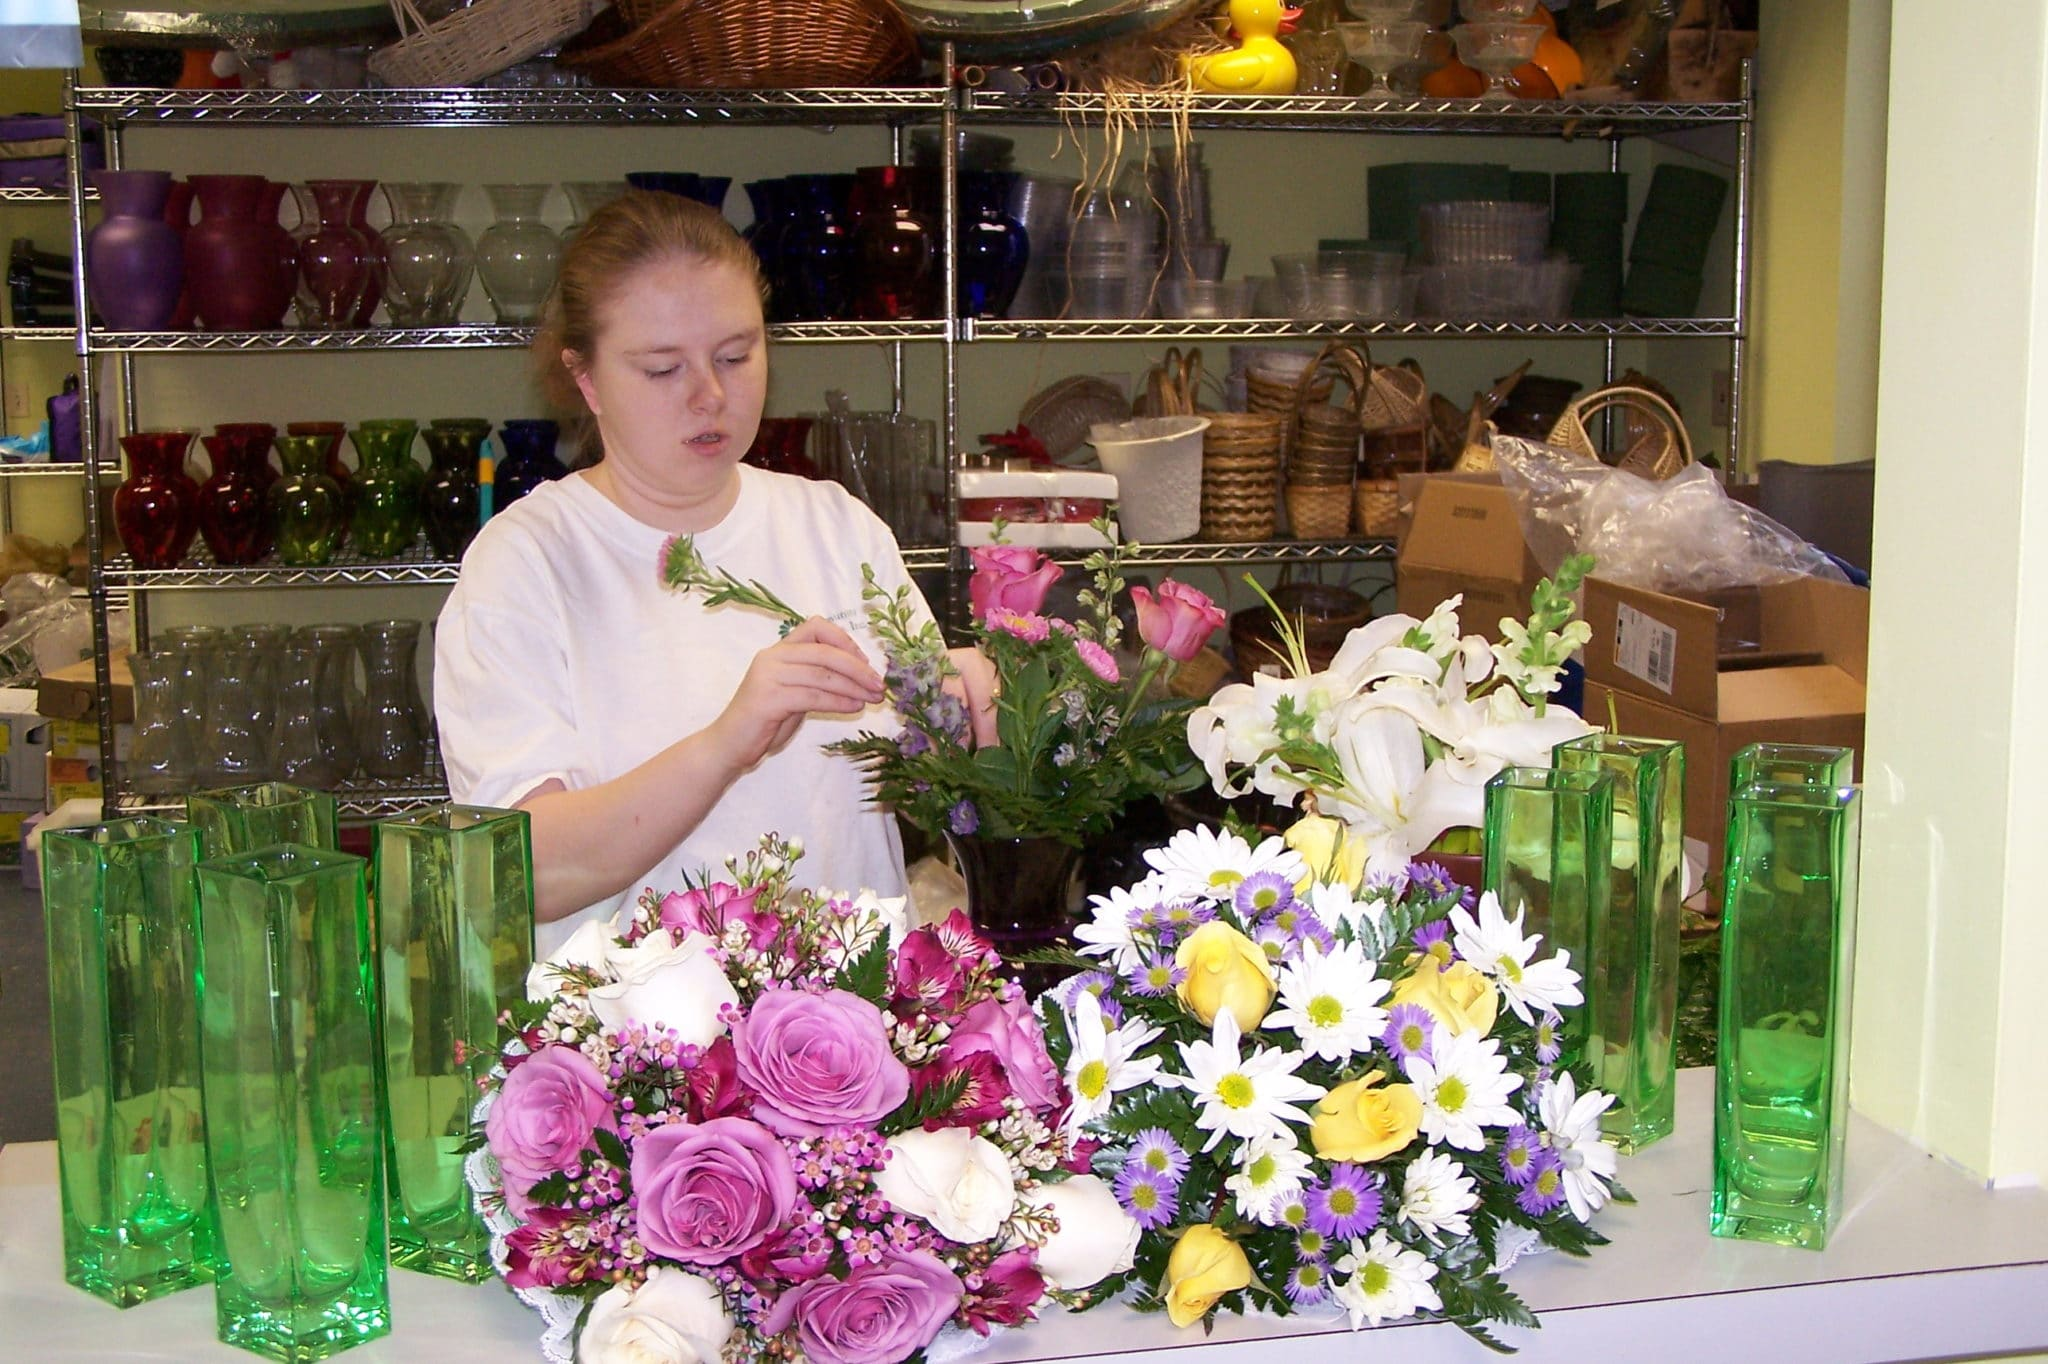 An employee arranging flowers